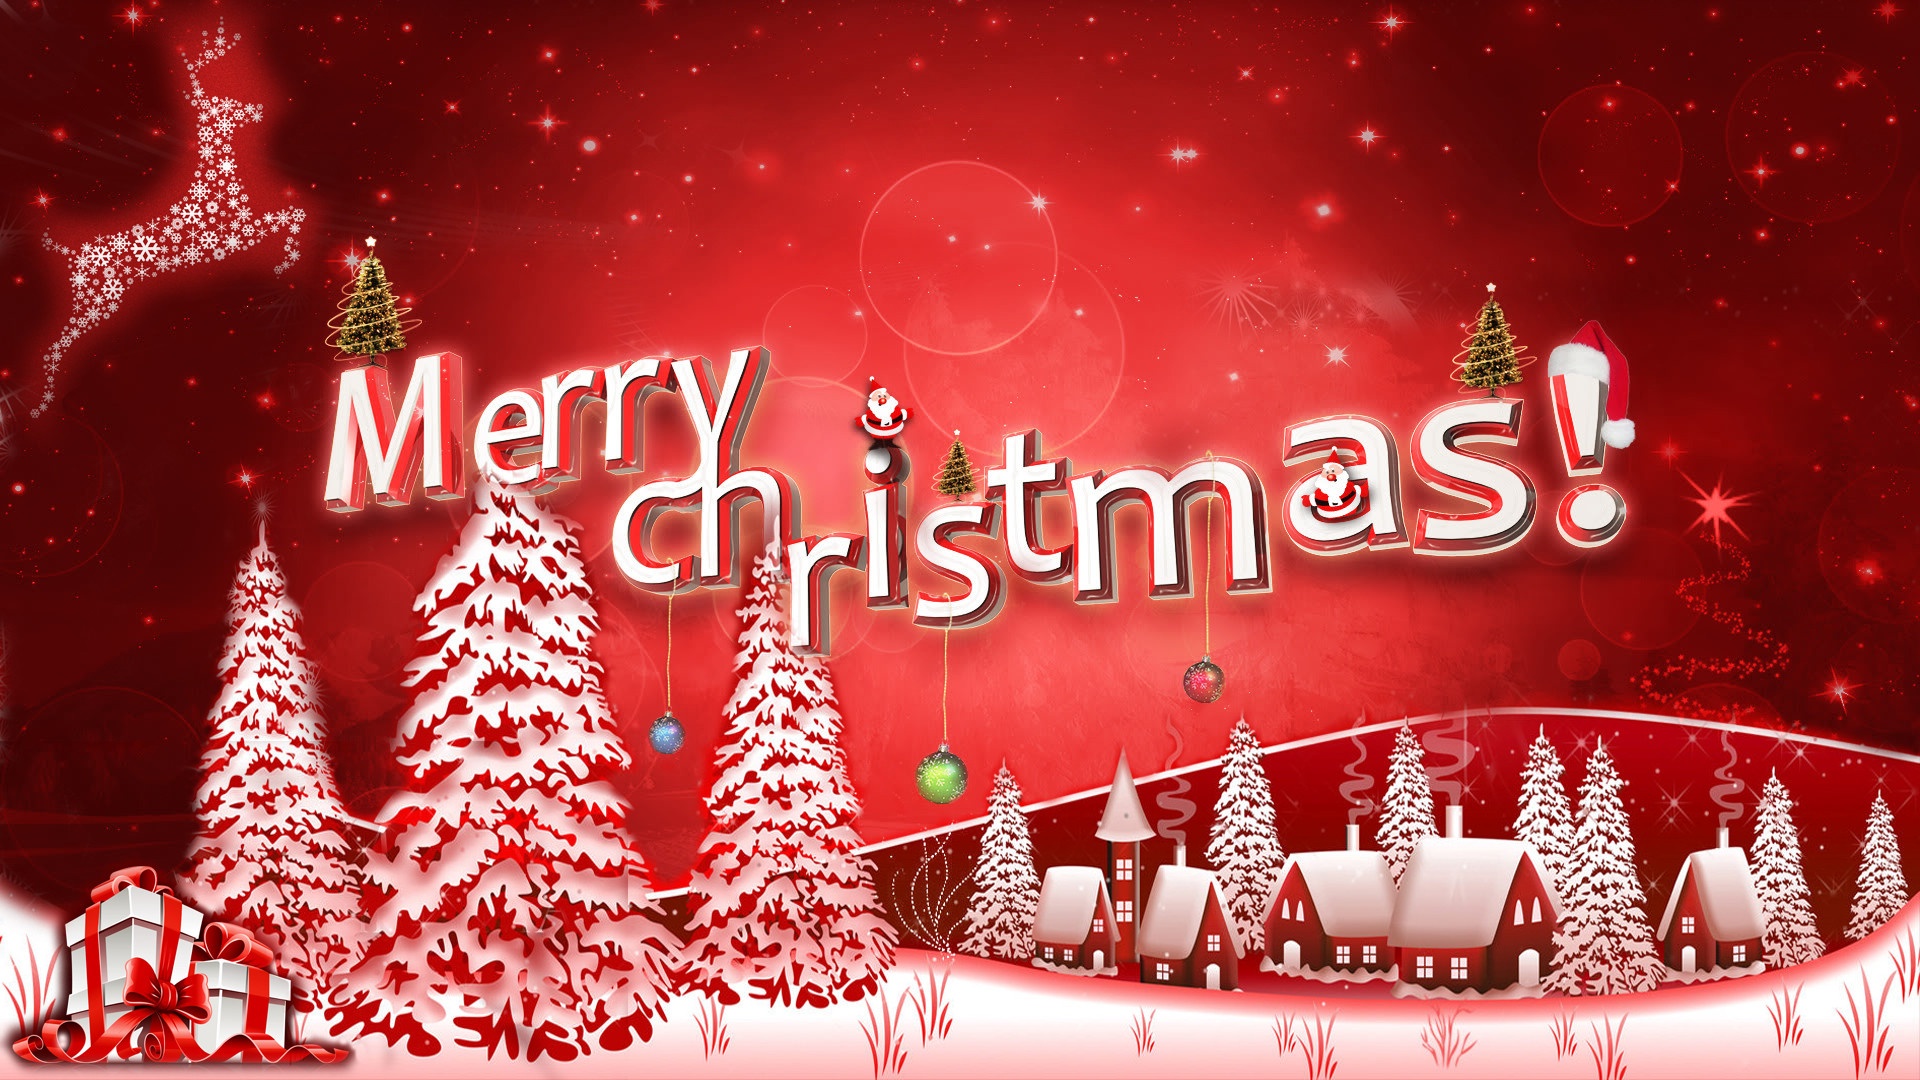 1920x1080 Merry Christmas Images #2989144 (License: Personal Use)